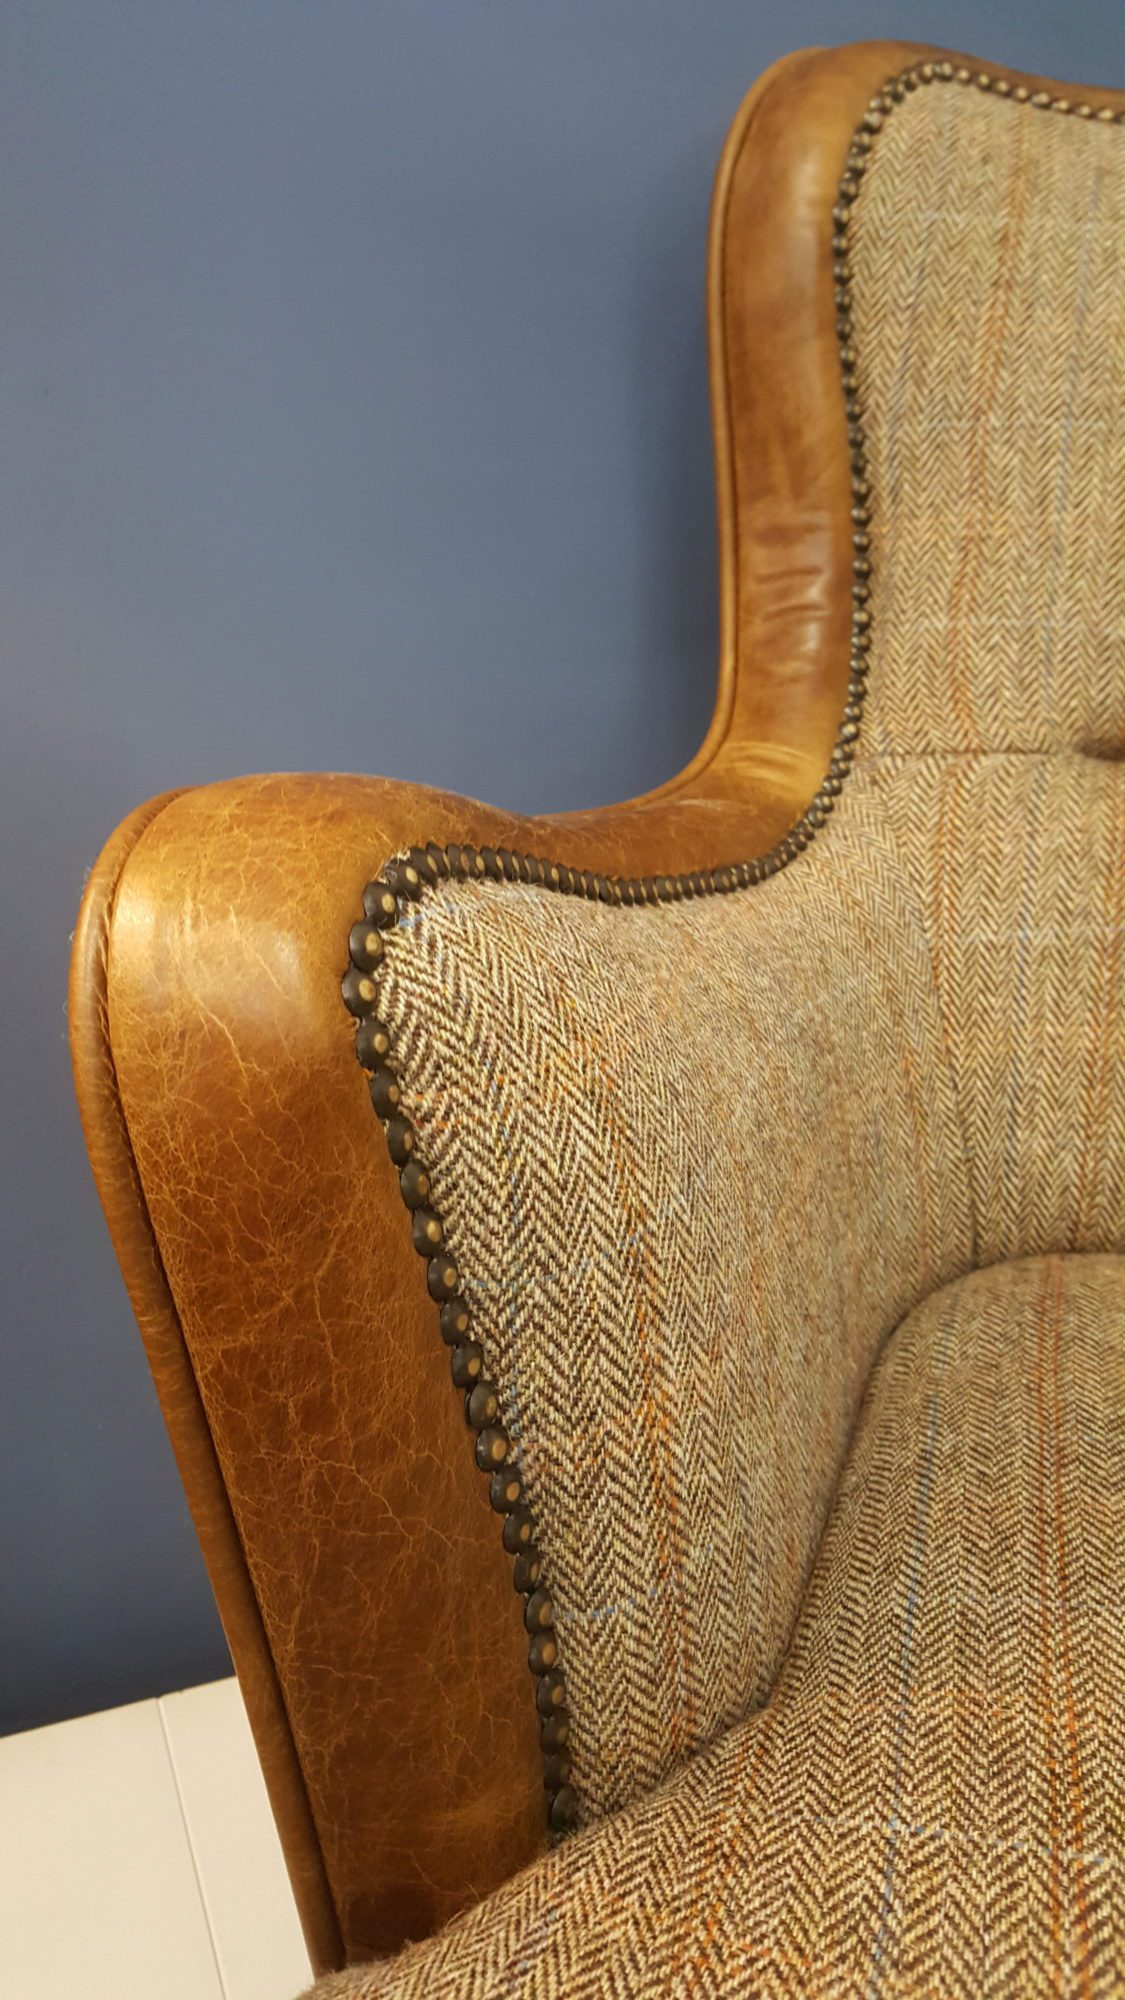 Vintage Sofa Co Ellis FT Chair low slung armchair in hunting lodge harris tweed and cerato leather edging